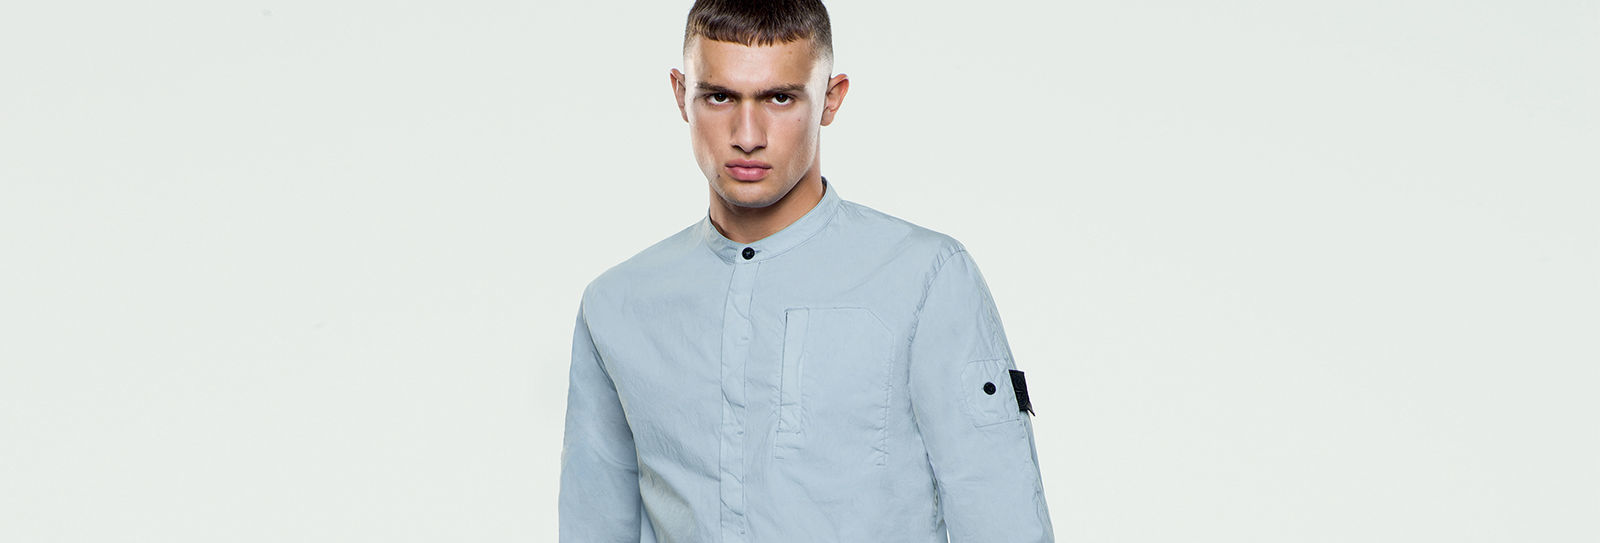 Model wearing long sleeved shirt with Mandarin collar with single button closure, concealed button placket and chest pocket on the left.